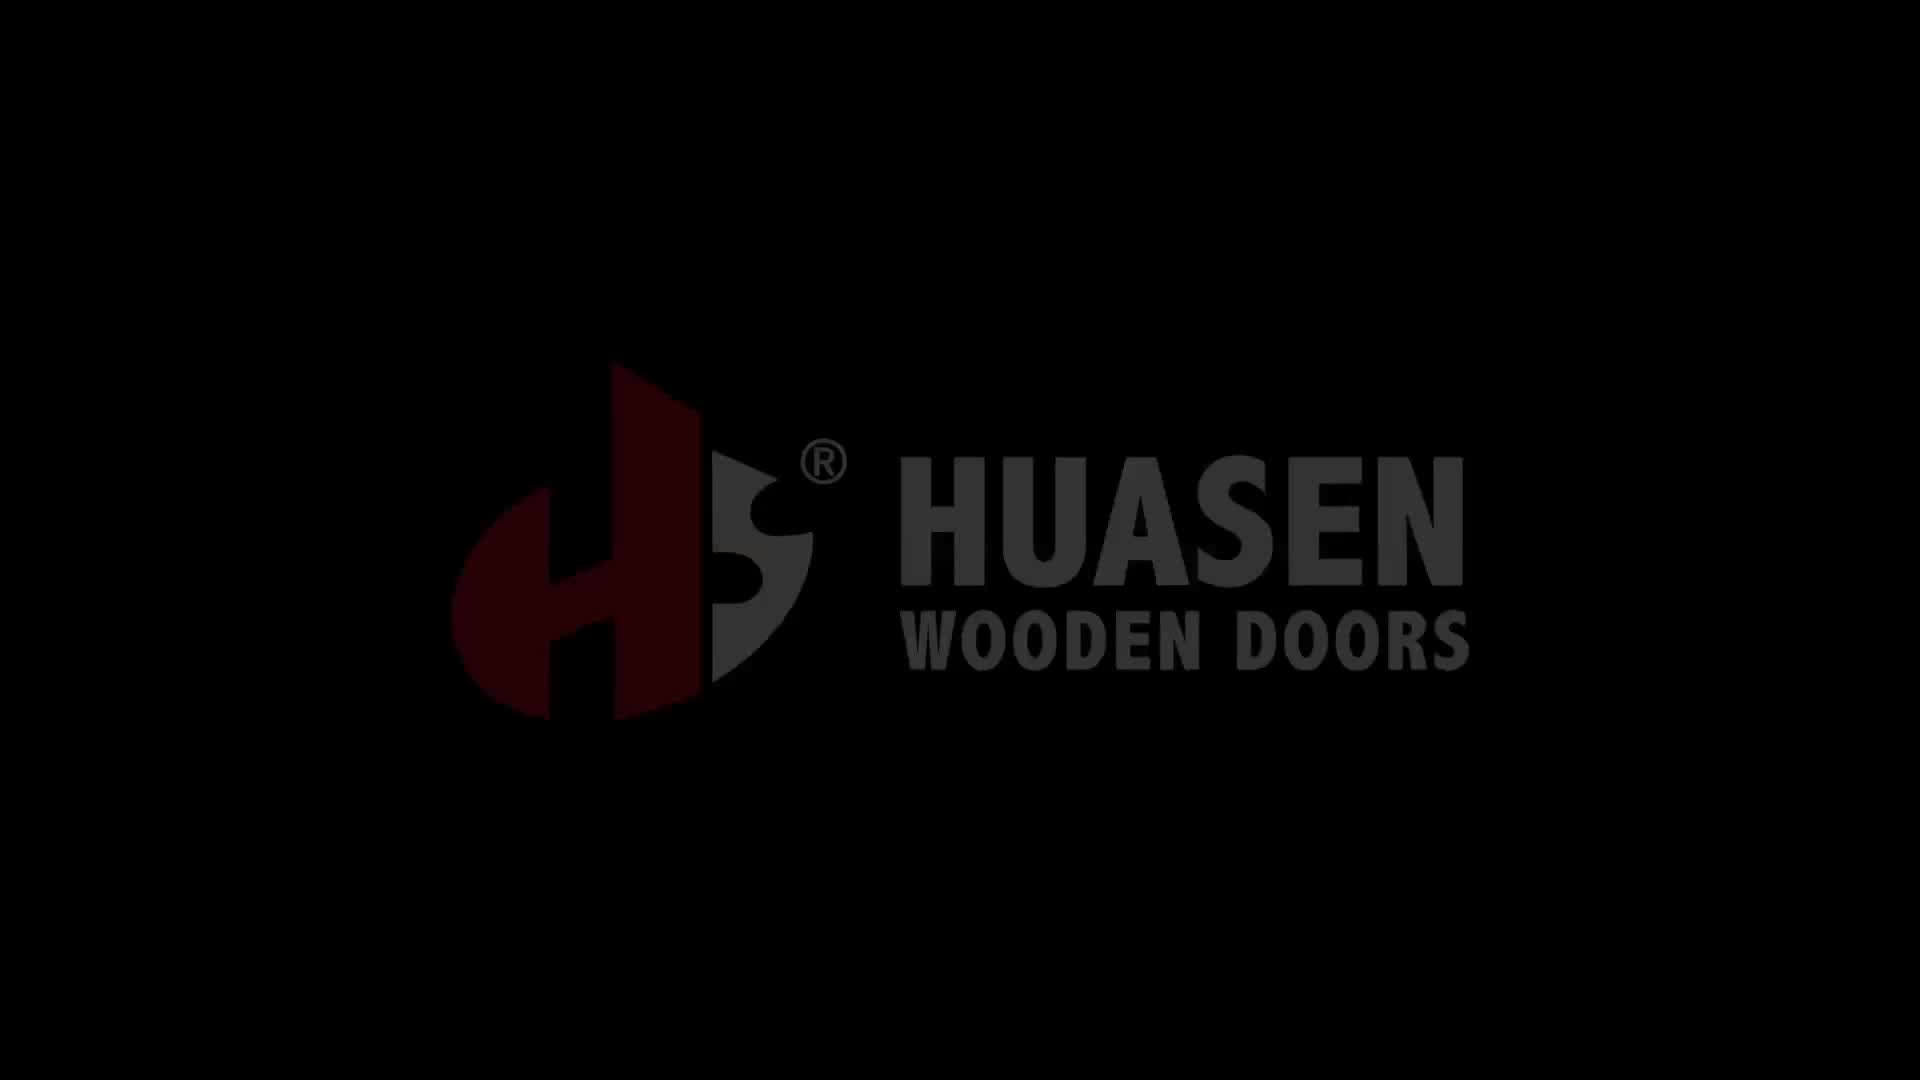 Good design PVC Wood Entry Door Made In China